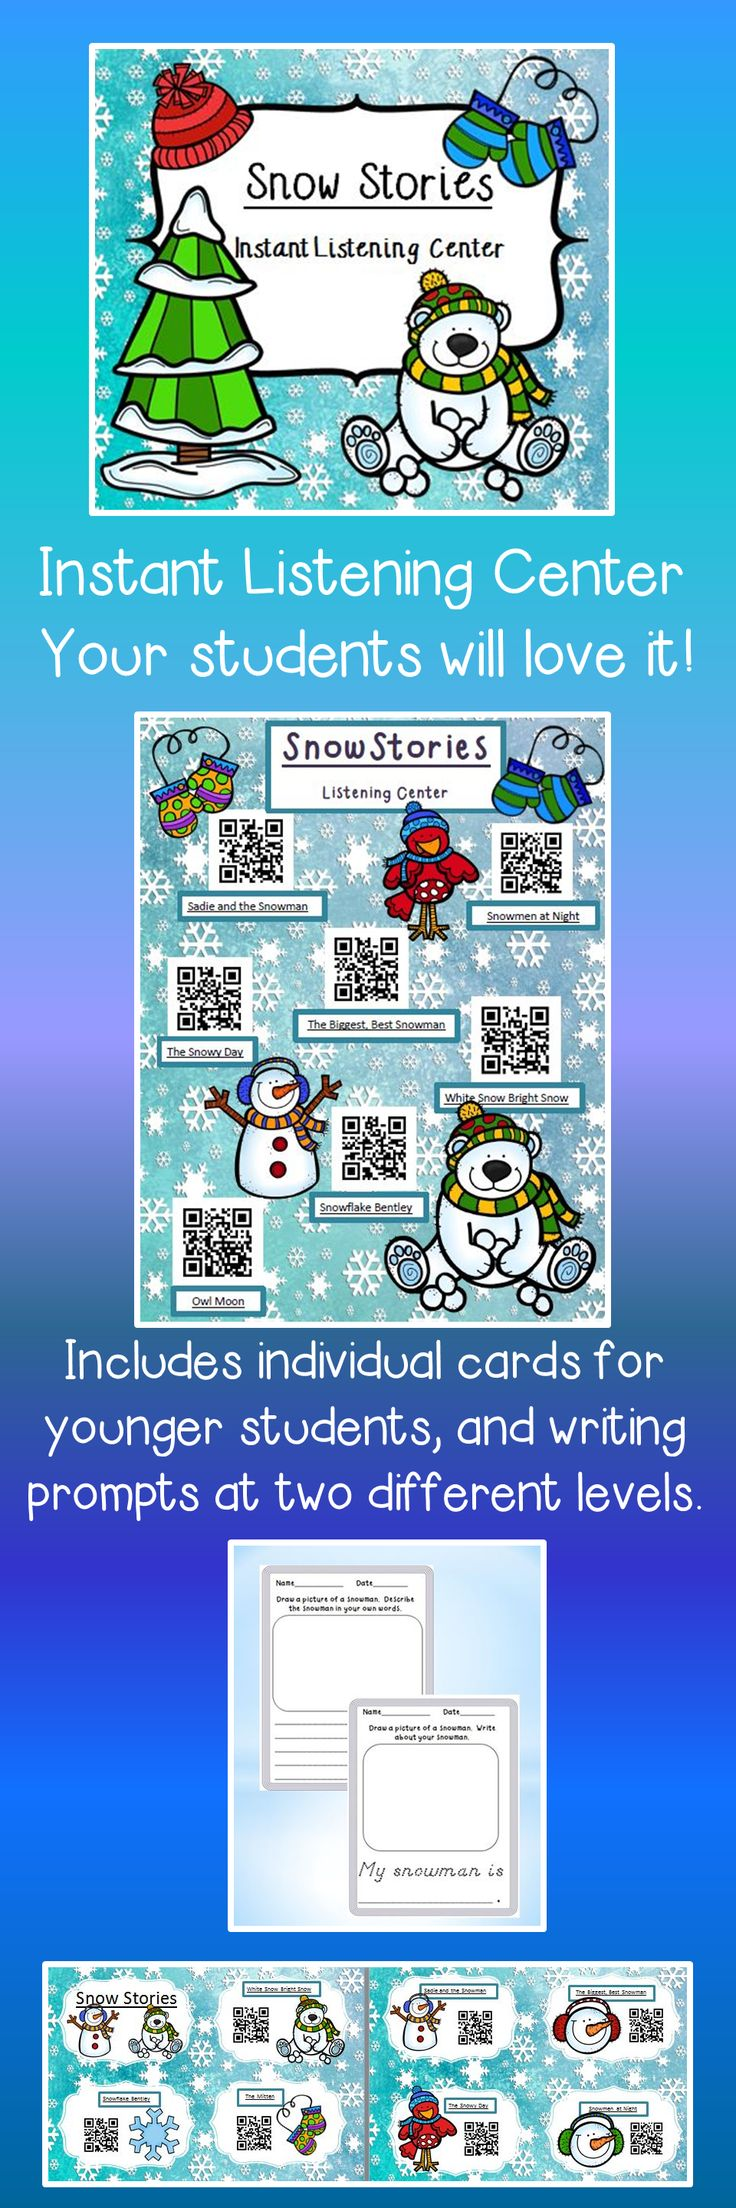 Just print this sheet and put it in your listening center.  Your students use an i-pod, i-pad, or other device to scan the QR codes.  This product also contains a writing activity.  Makes setting up your centers easy and fun for your students!  $3